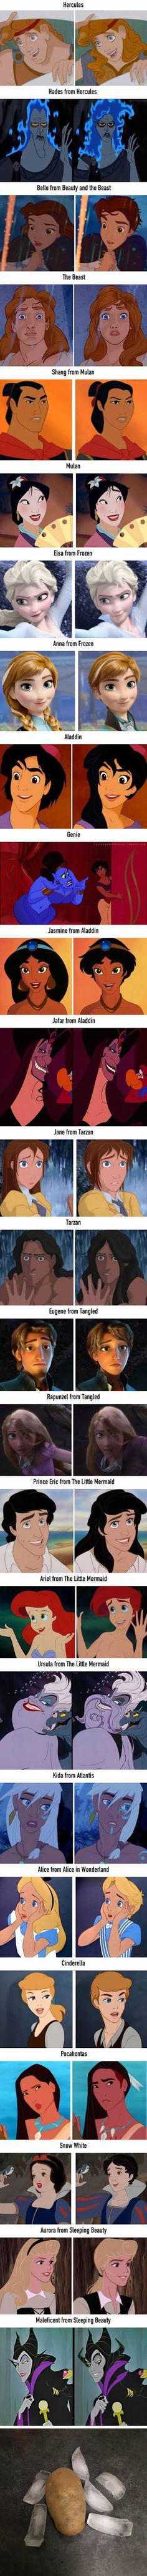 26 Gender-Bending Disney Characters That Actually Look Nice